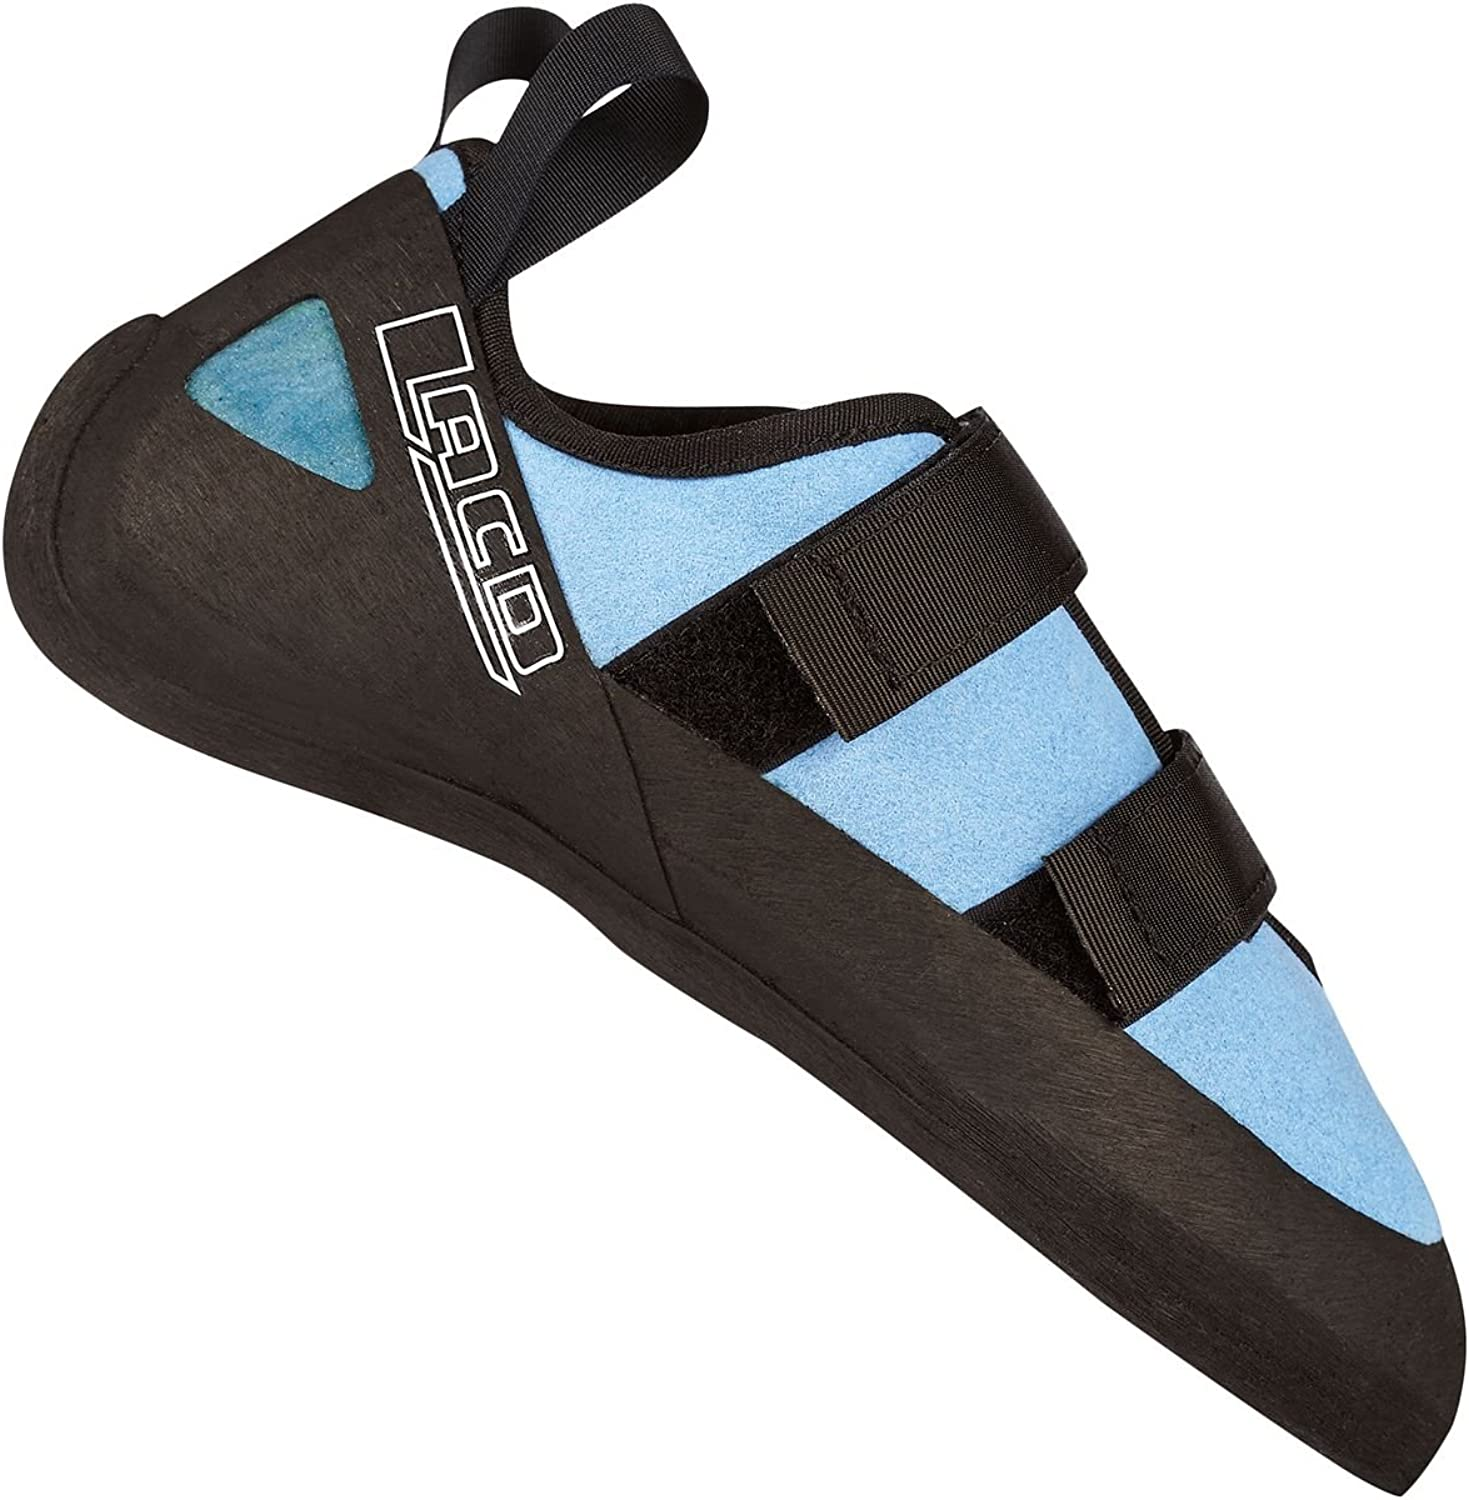 LACD LACD LACD Kletterschuhe  aab835